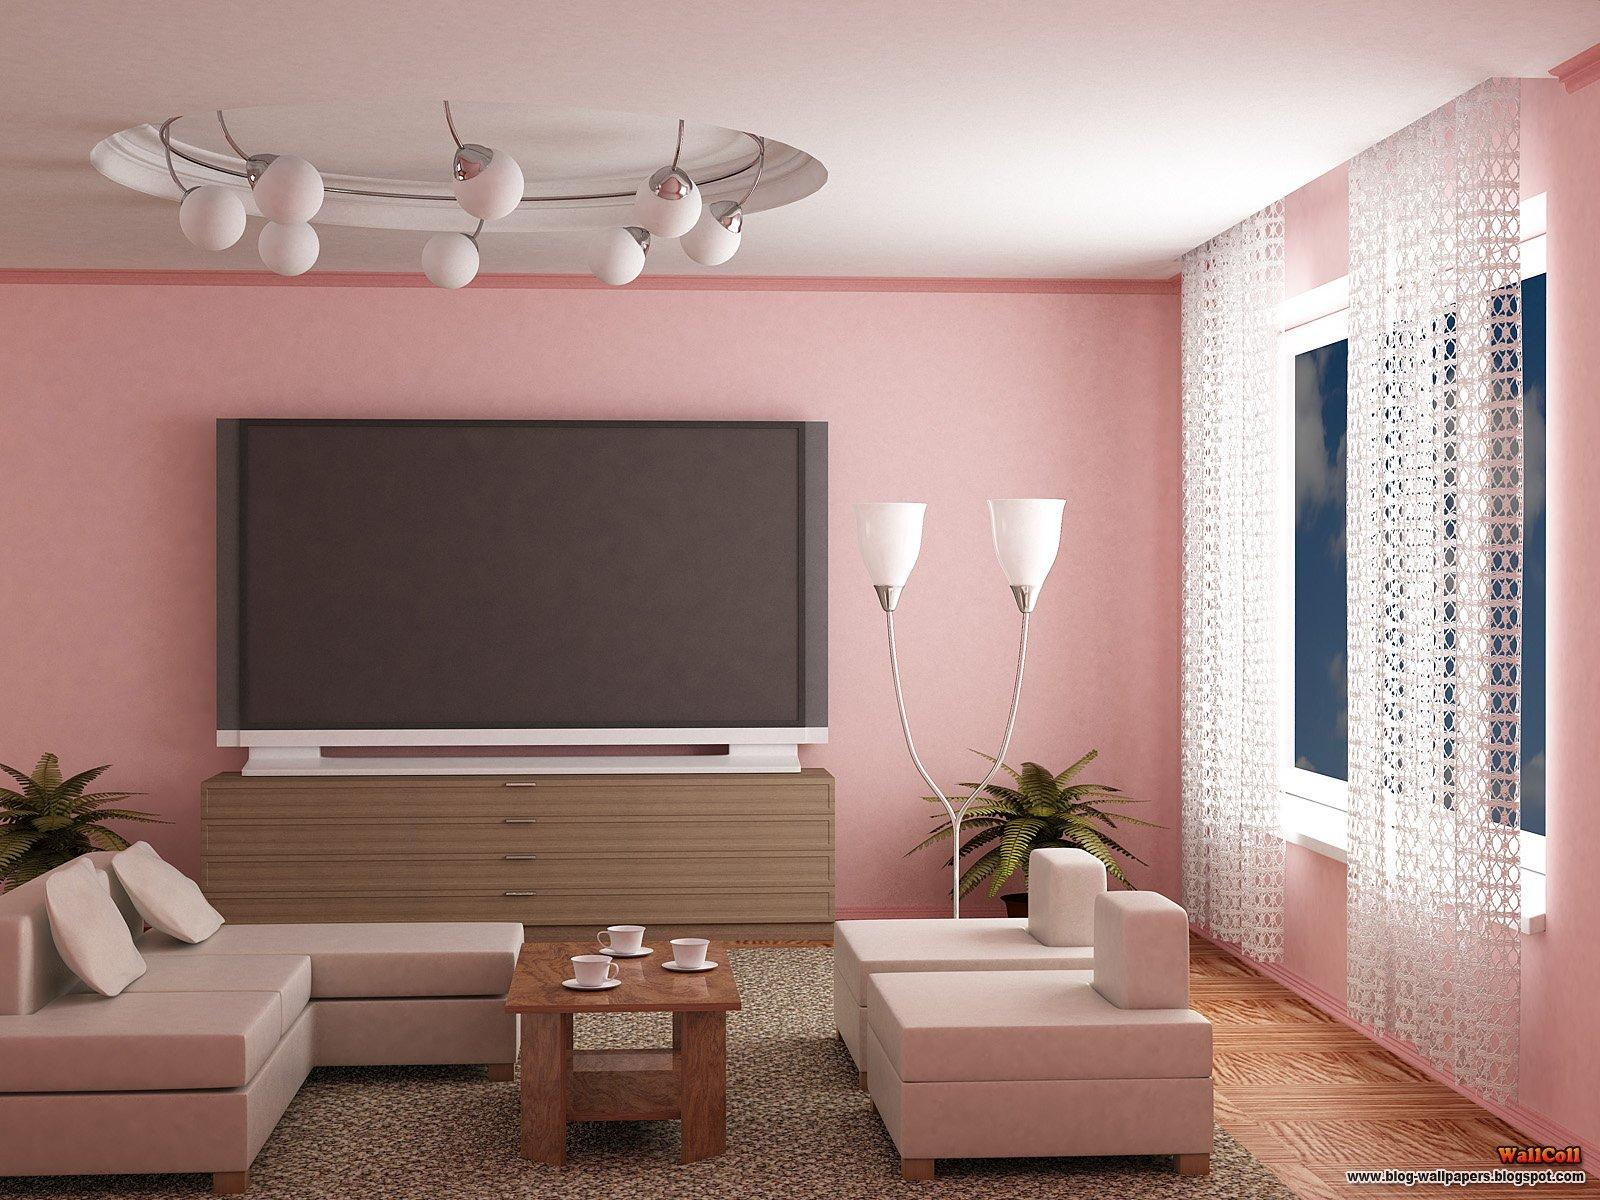 Asian paints royale pink colour rooms photos ethiopia Interior design painting walls living room